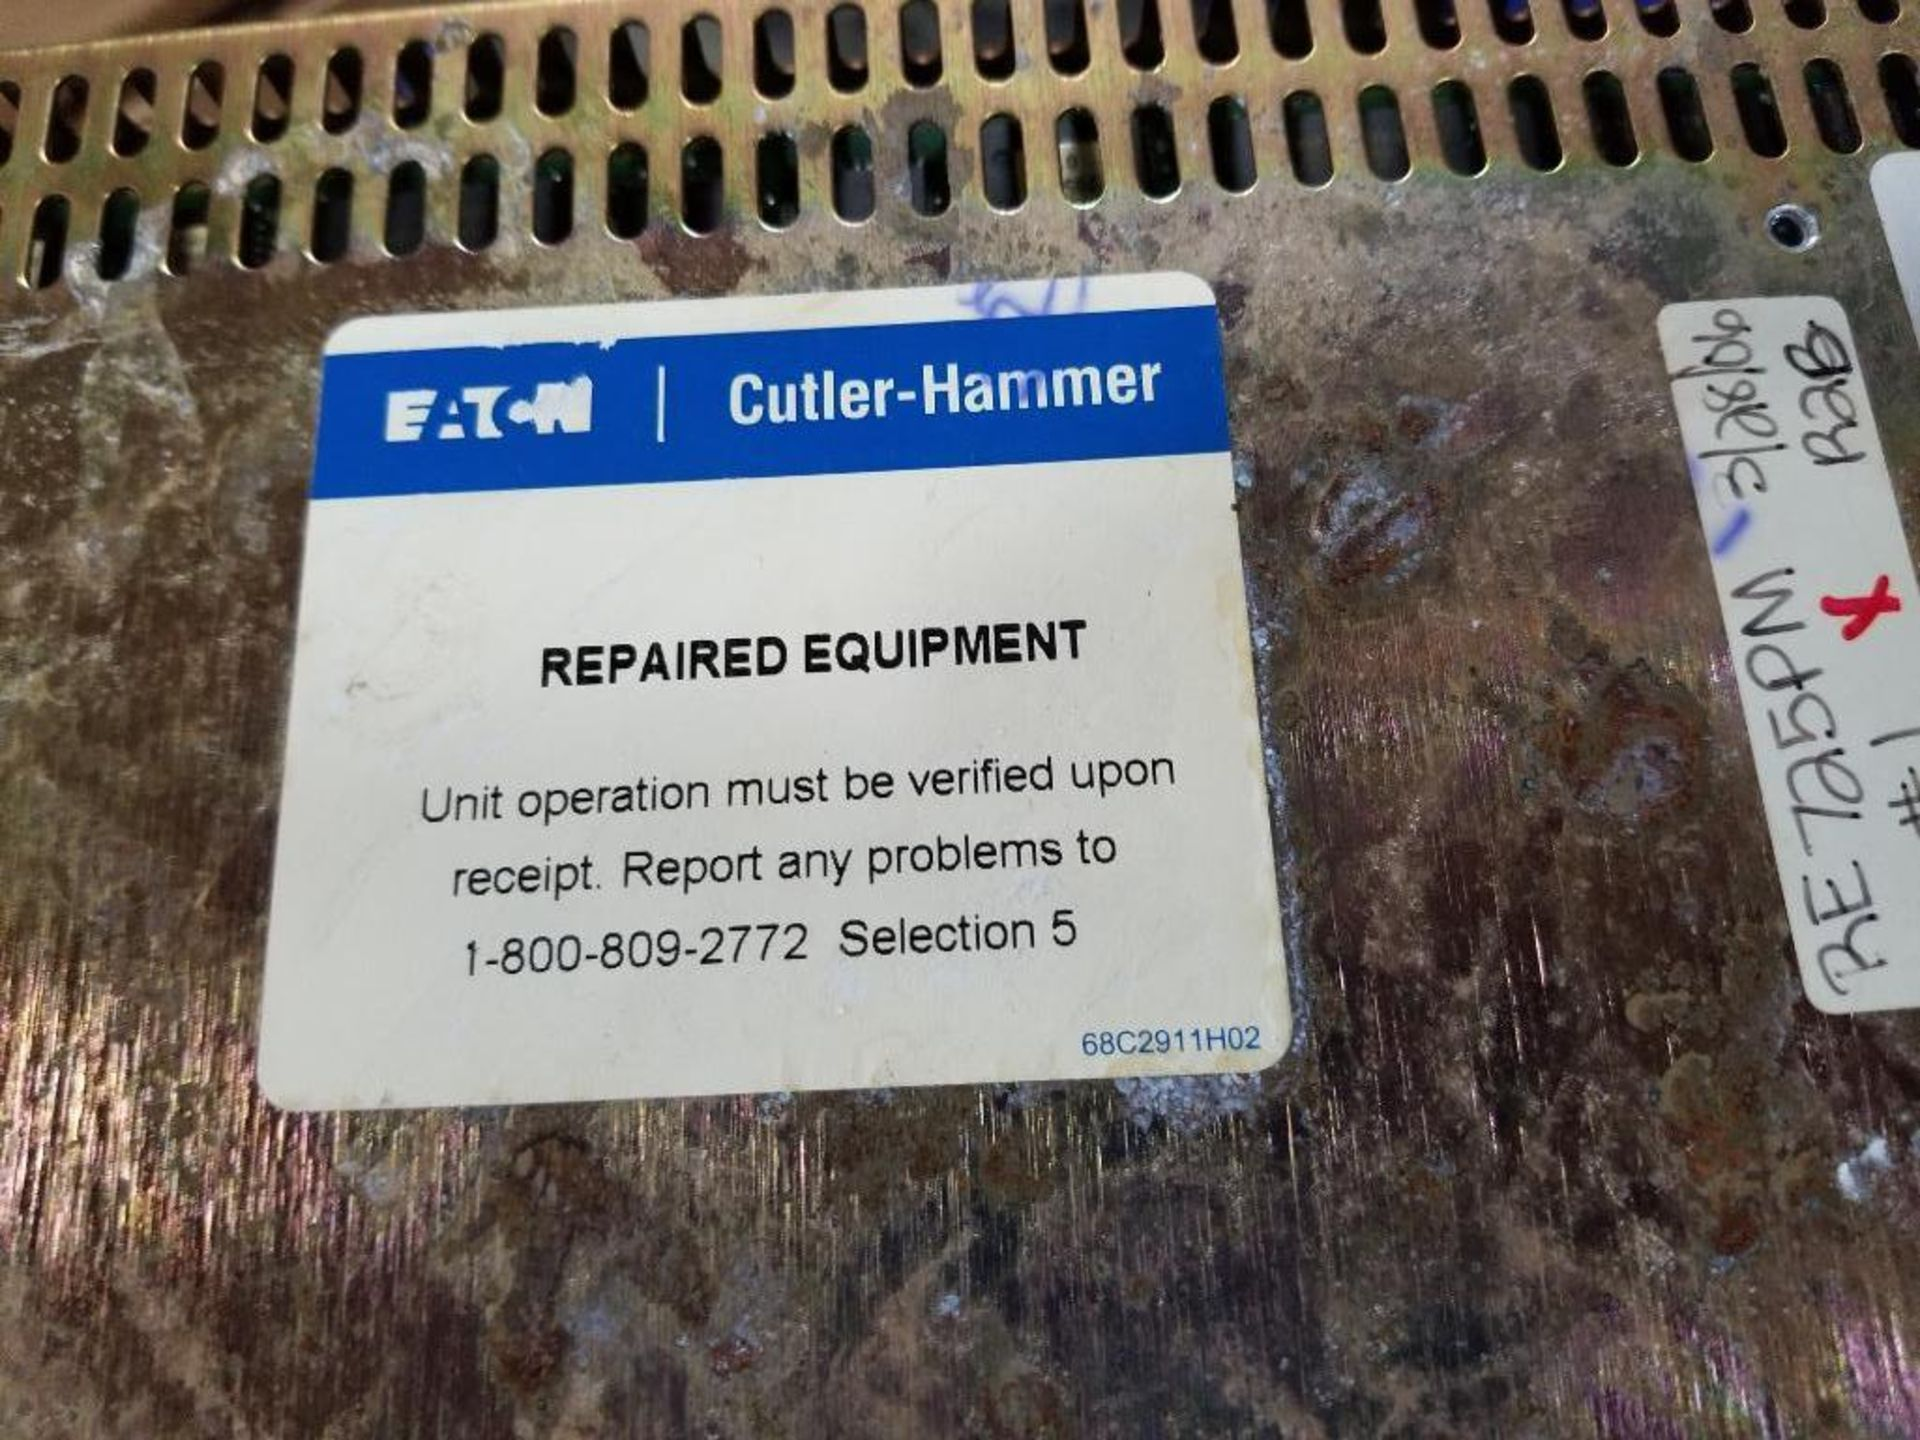 Qty 3 - Cutler Hammer Panelmate. One marked repaired. - Image 7 of 8